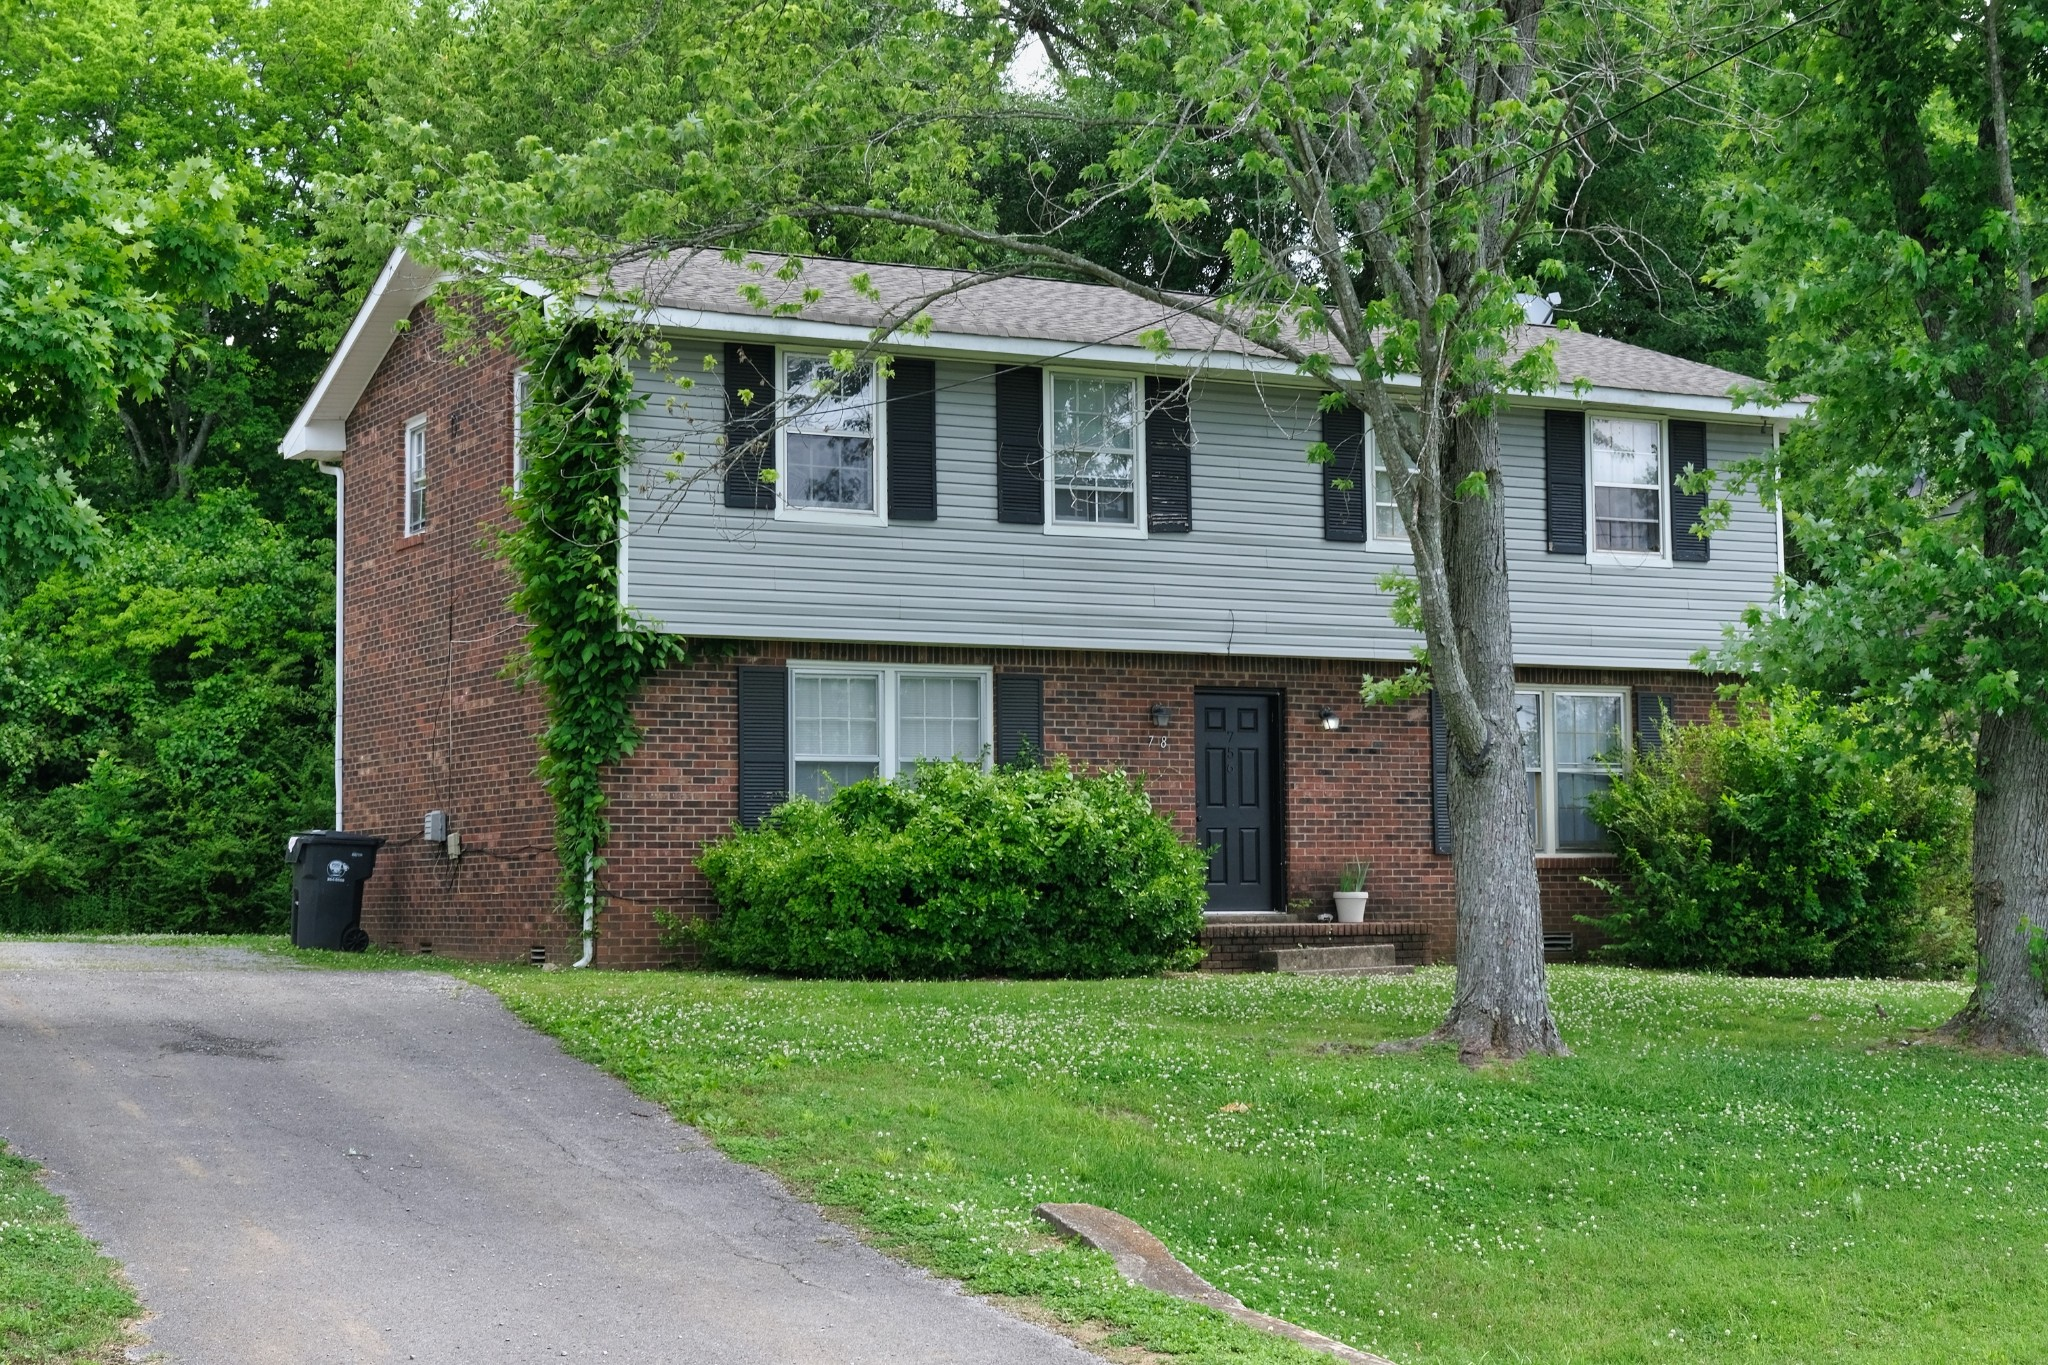 Listing is for 602 McPherson Ct S and 705/707/713/717/720/722/756 McPherson Dr (8 units). 7 of 8 units currently occupied. Long-term tenants in place. 3 bed/1.5 bath townhomes. Professionally managed. Some newer roofs, HVACs, and all plumbing inspected. Value-add here with some units needing updating. Seller willing to sell in packages of 4!